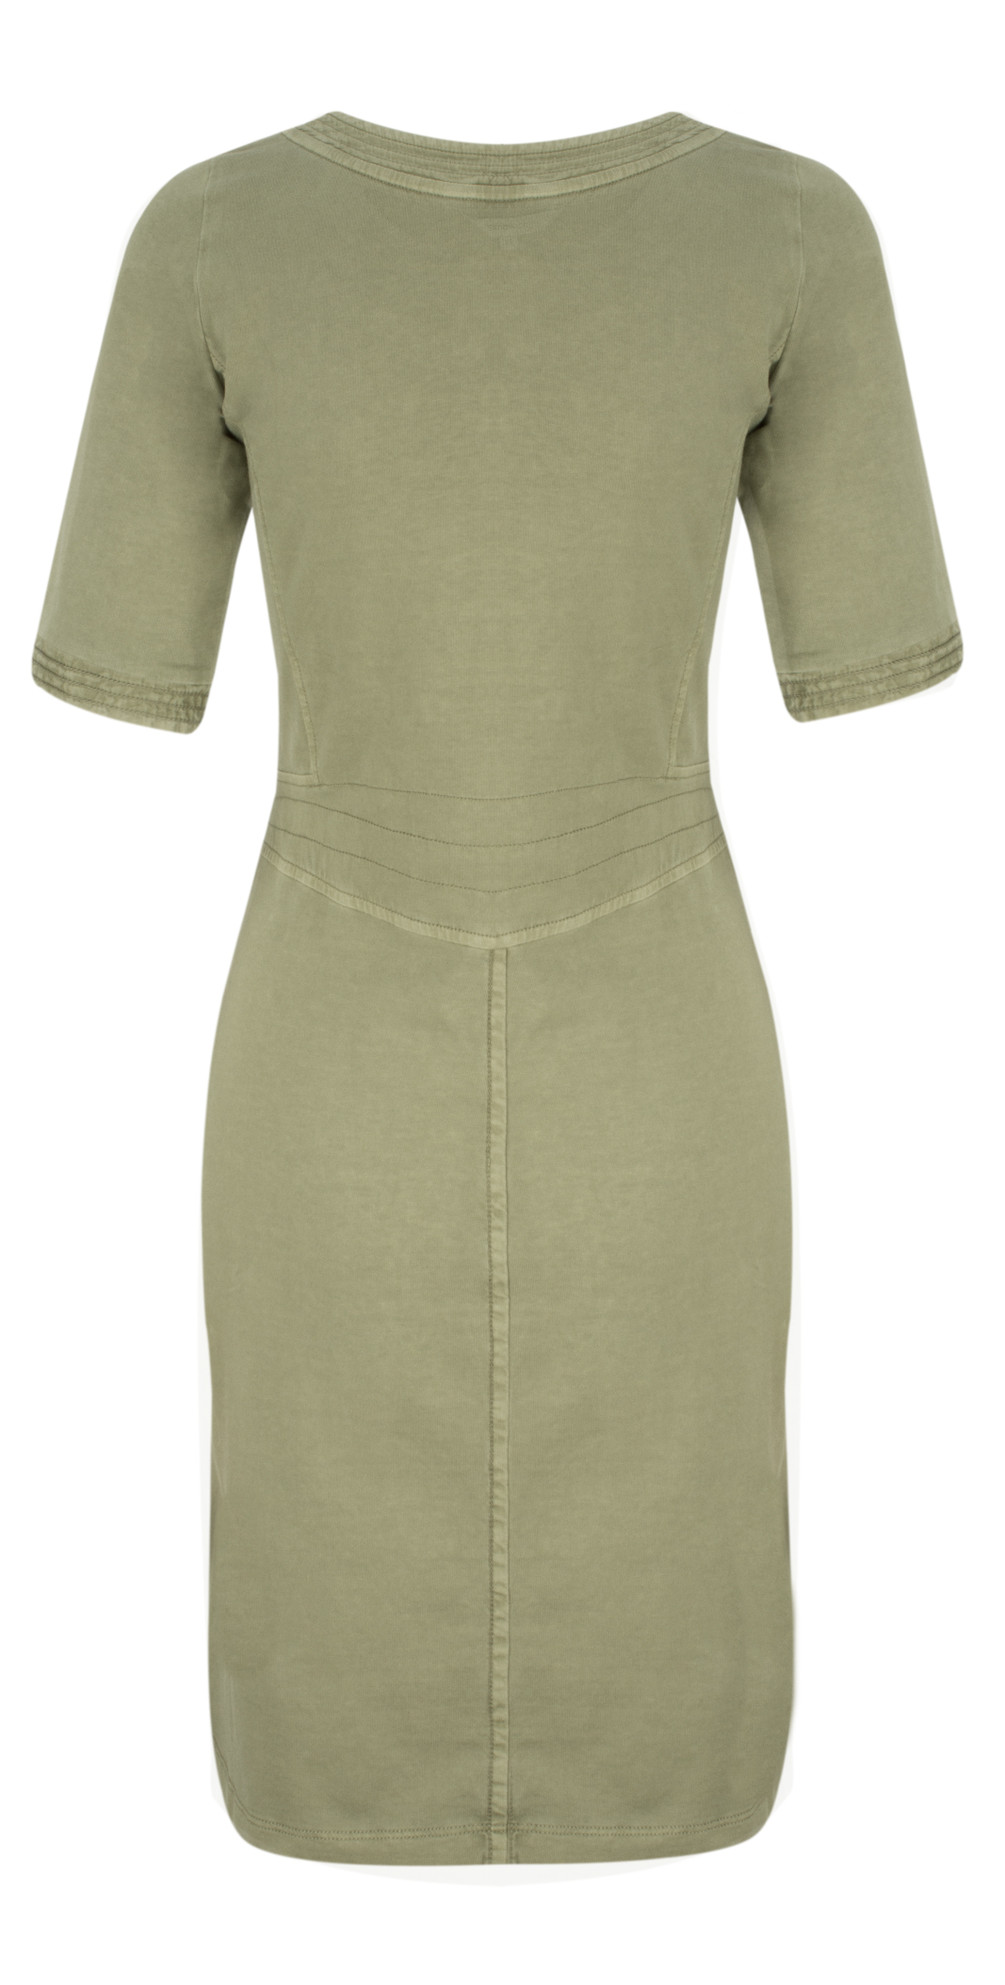 sandwich clothing single jersey dress in washed army. Black Bedroom Furniture Sets. Home Design Ideas